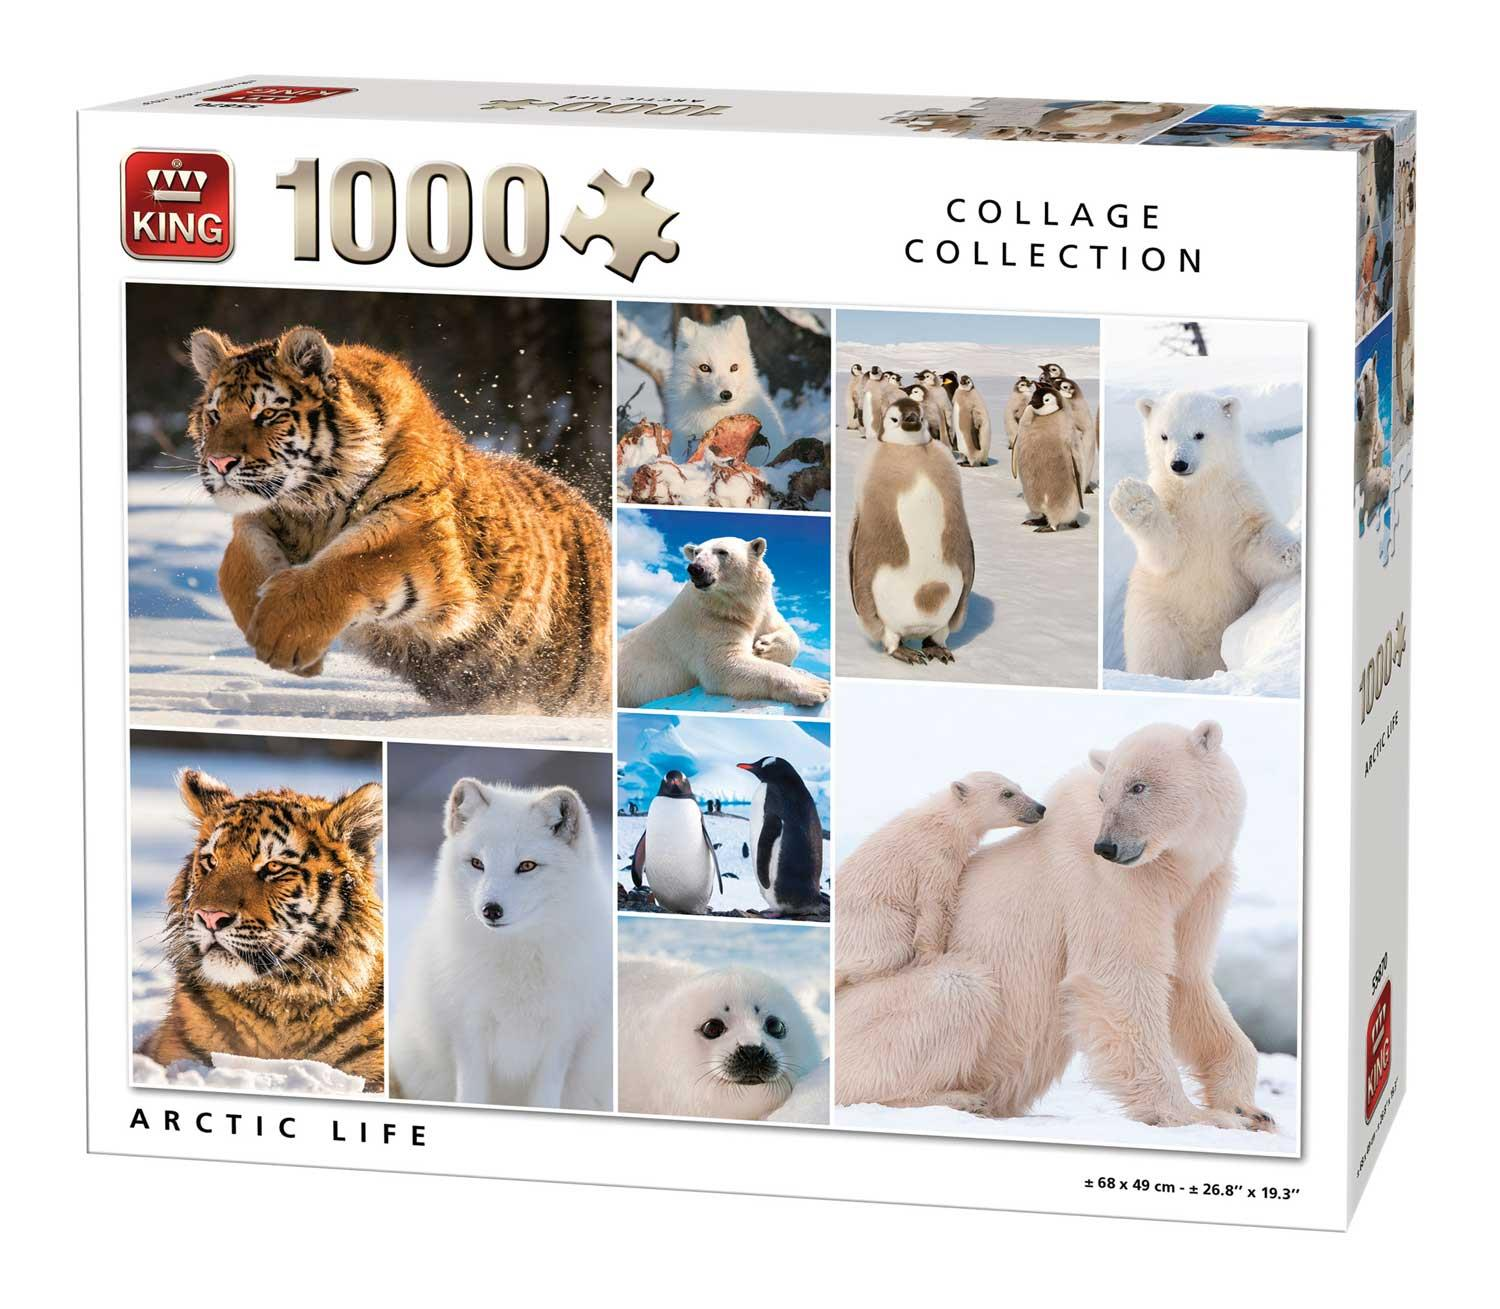 King Arctic Life Collage Jigsaw Puzzle (1000 Pieces)